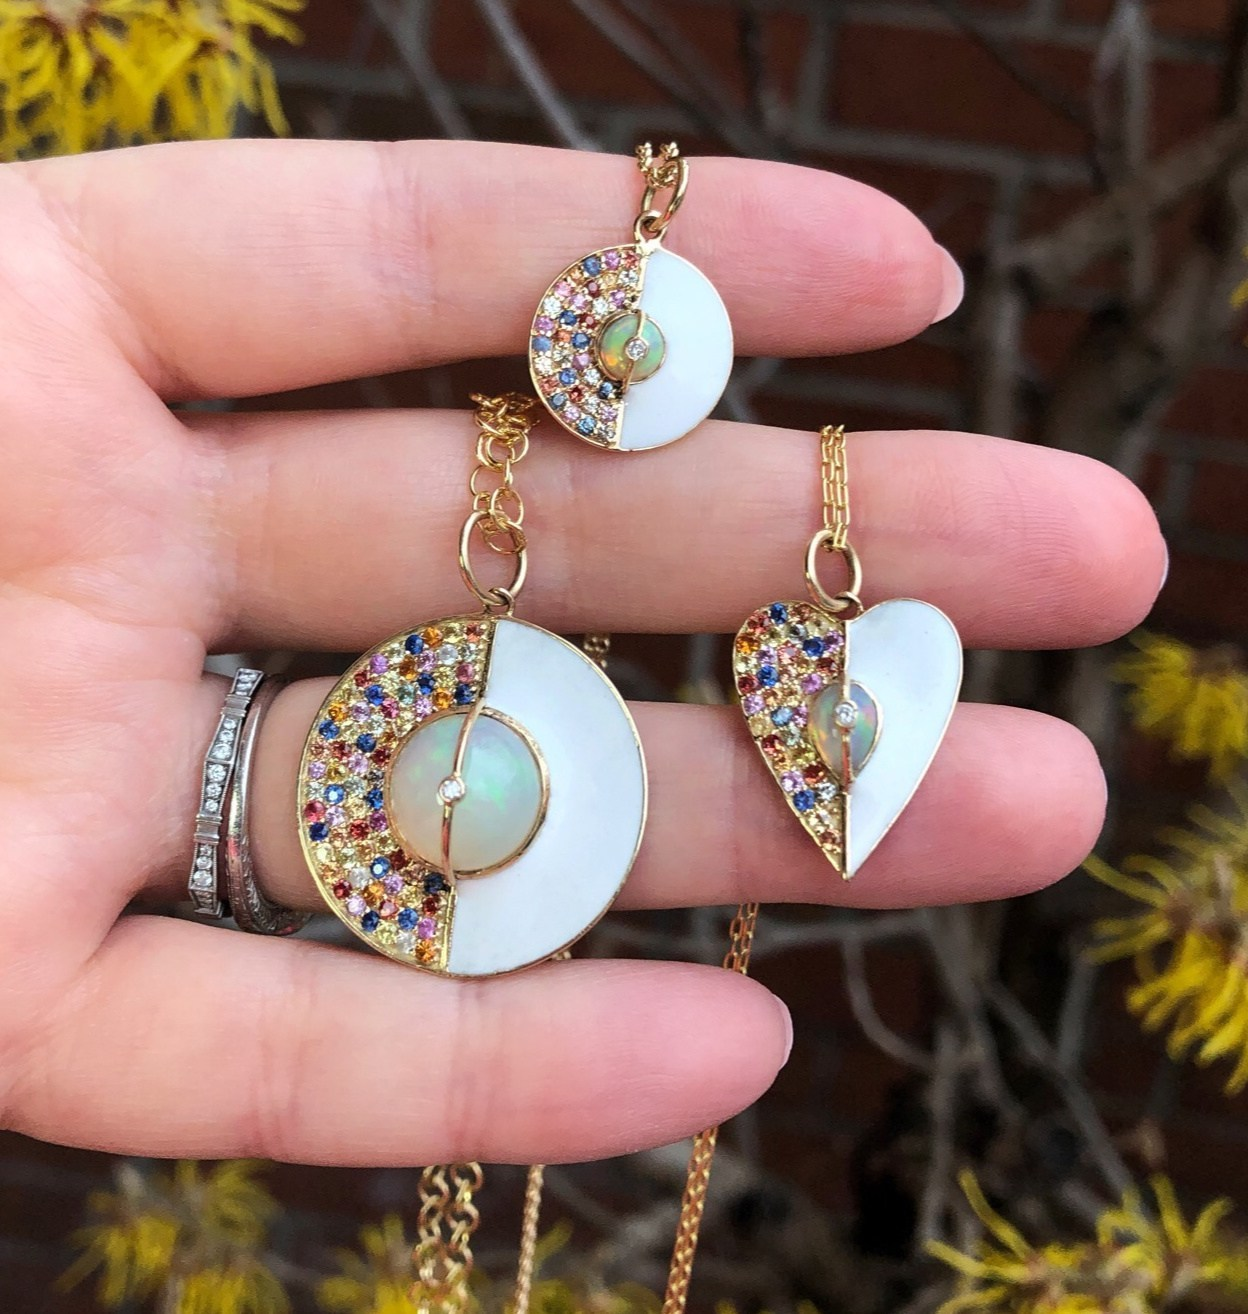 Beautiful necklaces from Loriann Jewelry's new Unity Collection! Colorful sappphires, white enamel, and a opal in gold.